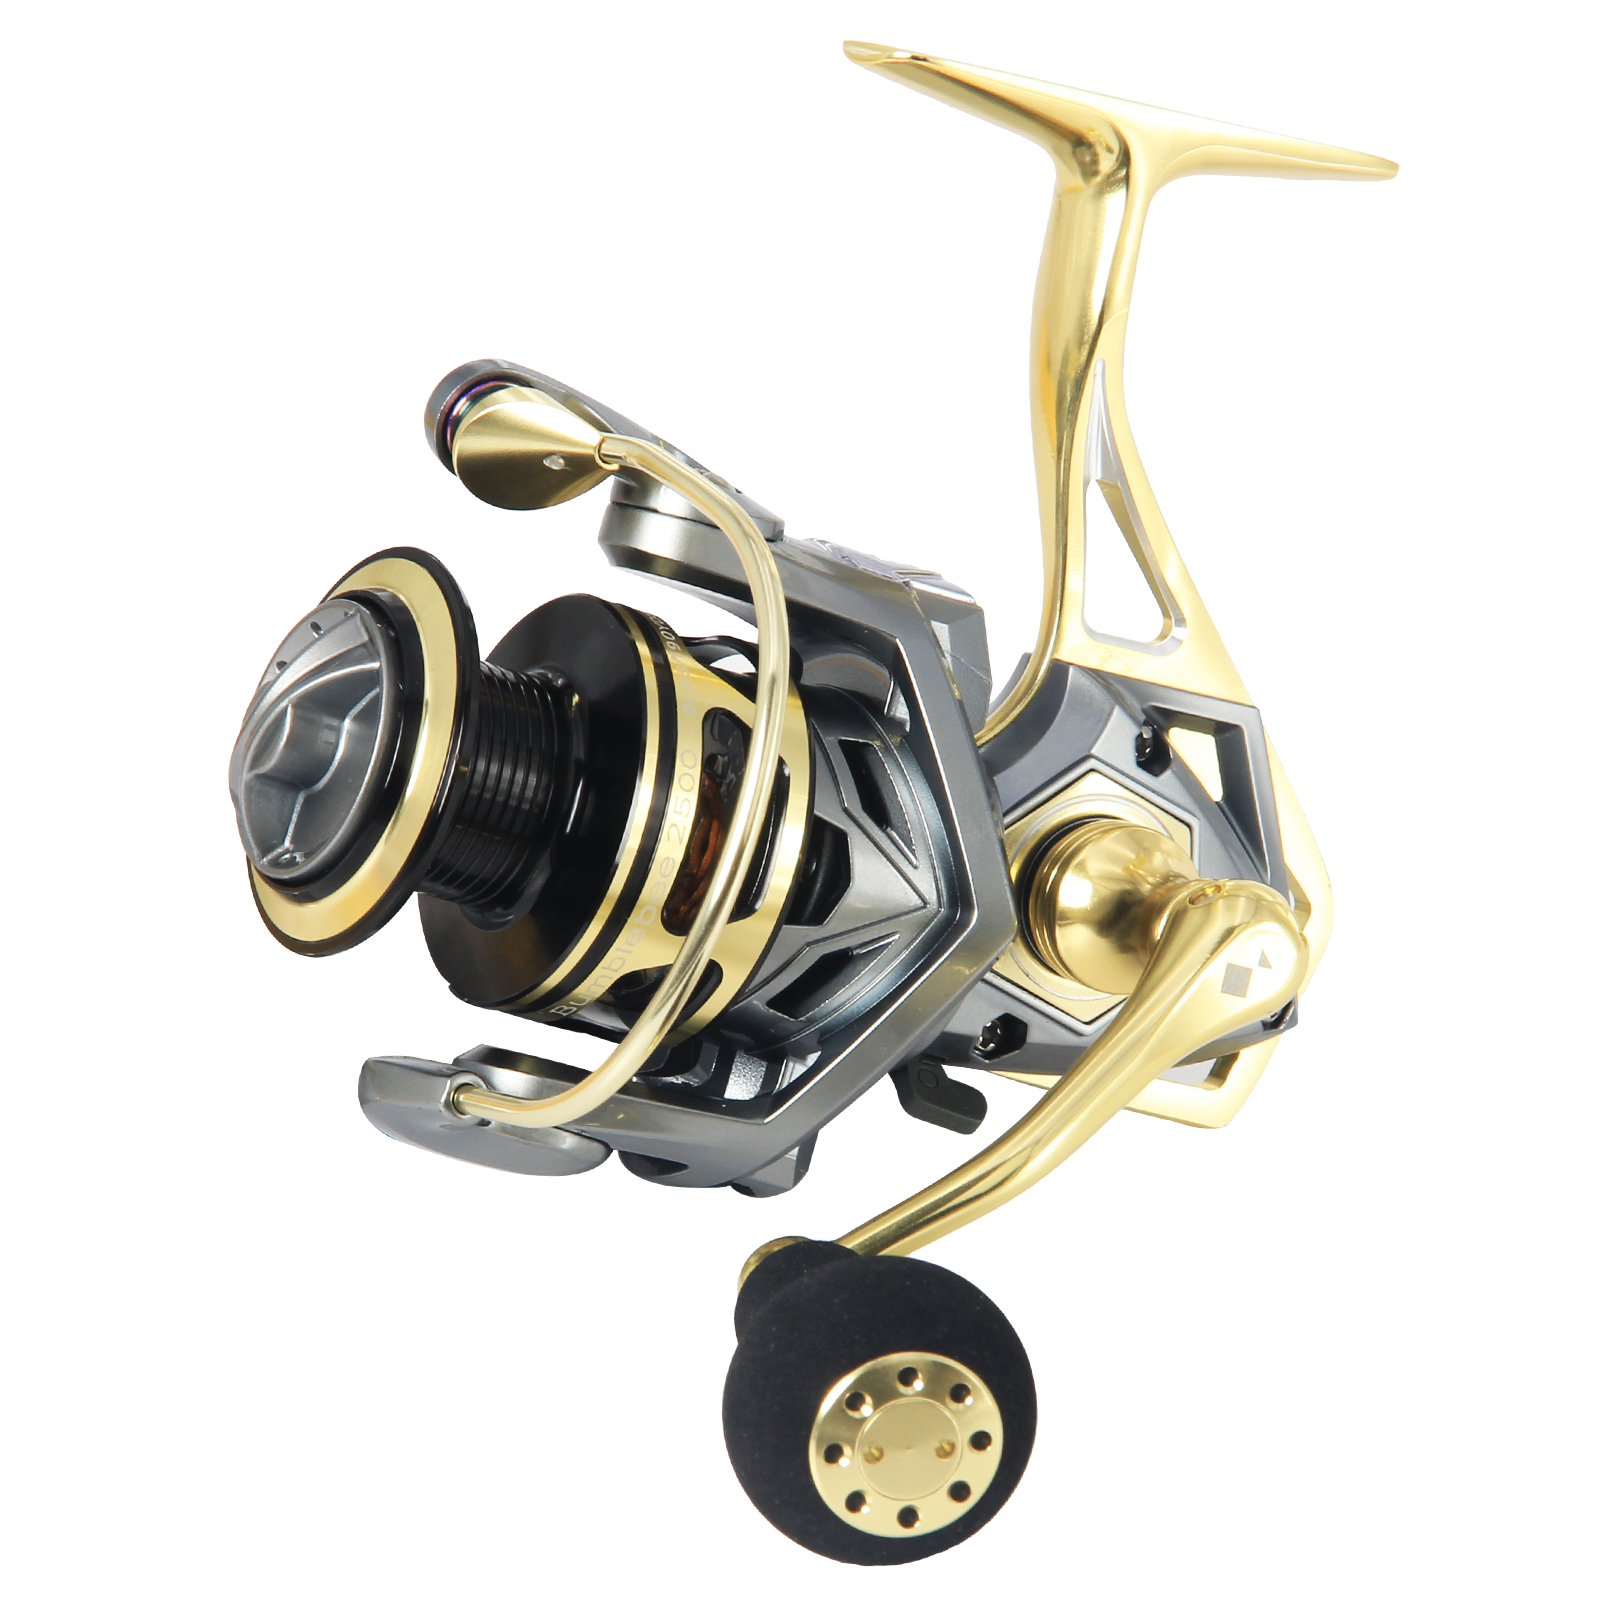 Angler Dream Size  Spinner Reels 5.2:1 Ratio Max Drag 20kg Full Metal Sea Fishing Reels Spinning, Gold